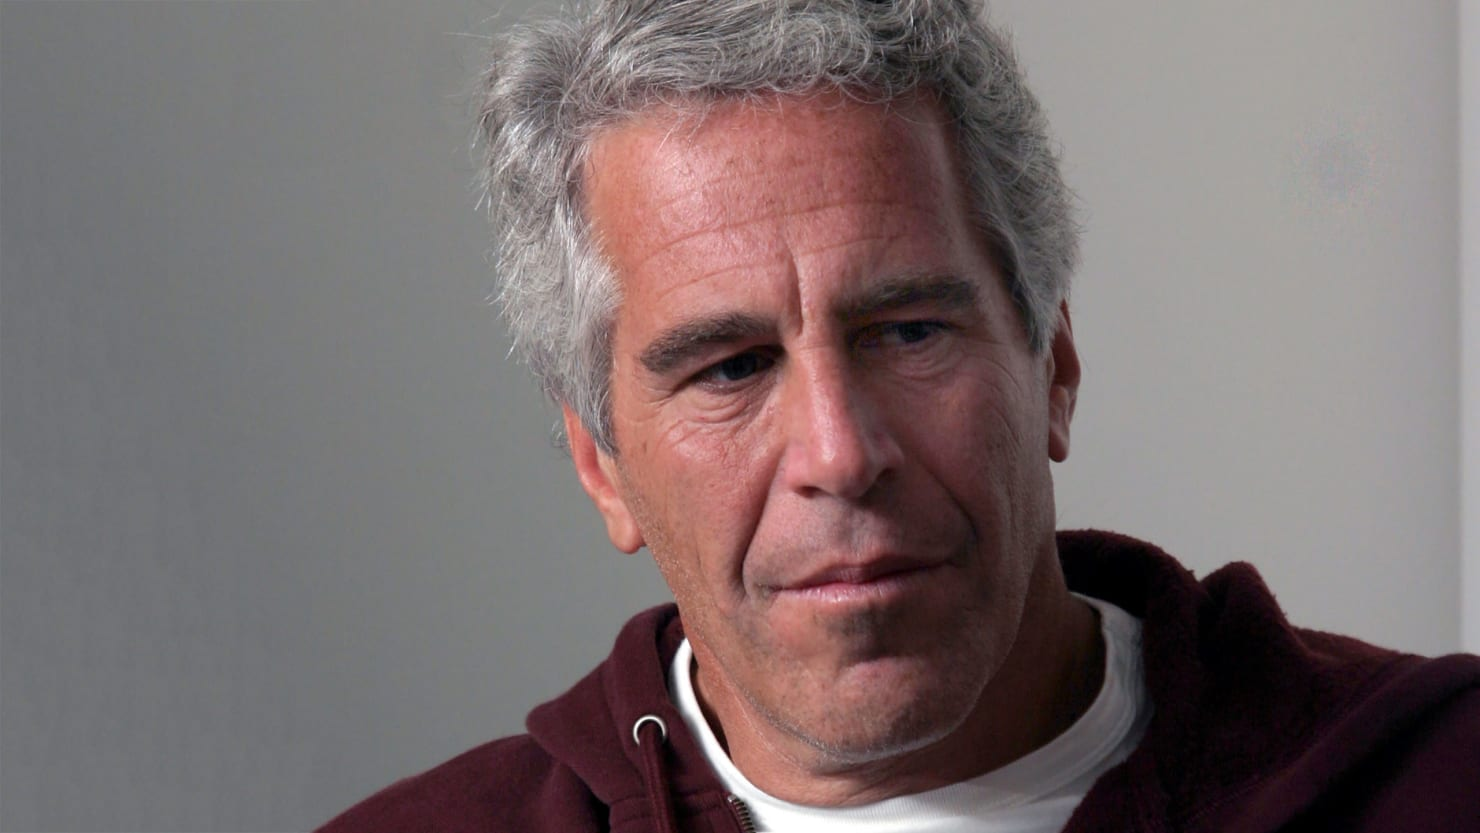 Jeffrey Epstein Became a Government Informant as Part of Sweetheart Plea Deal